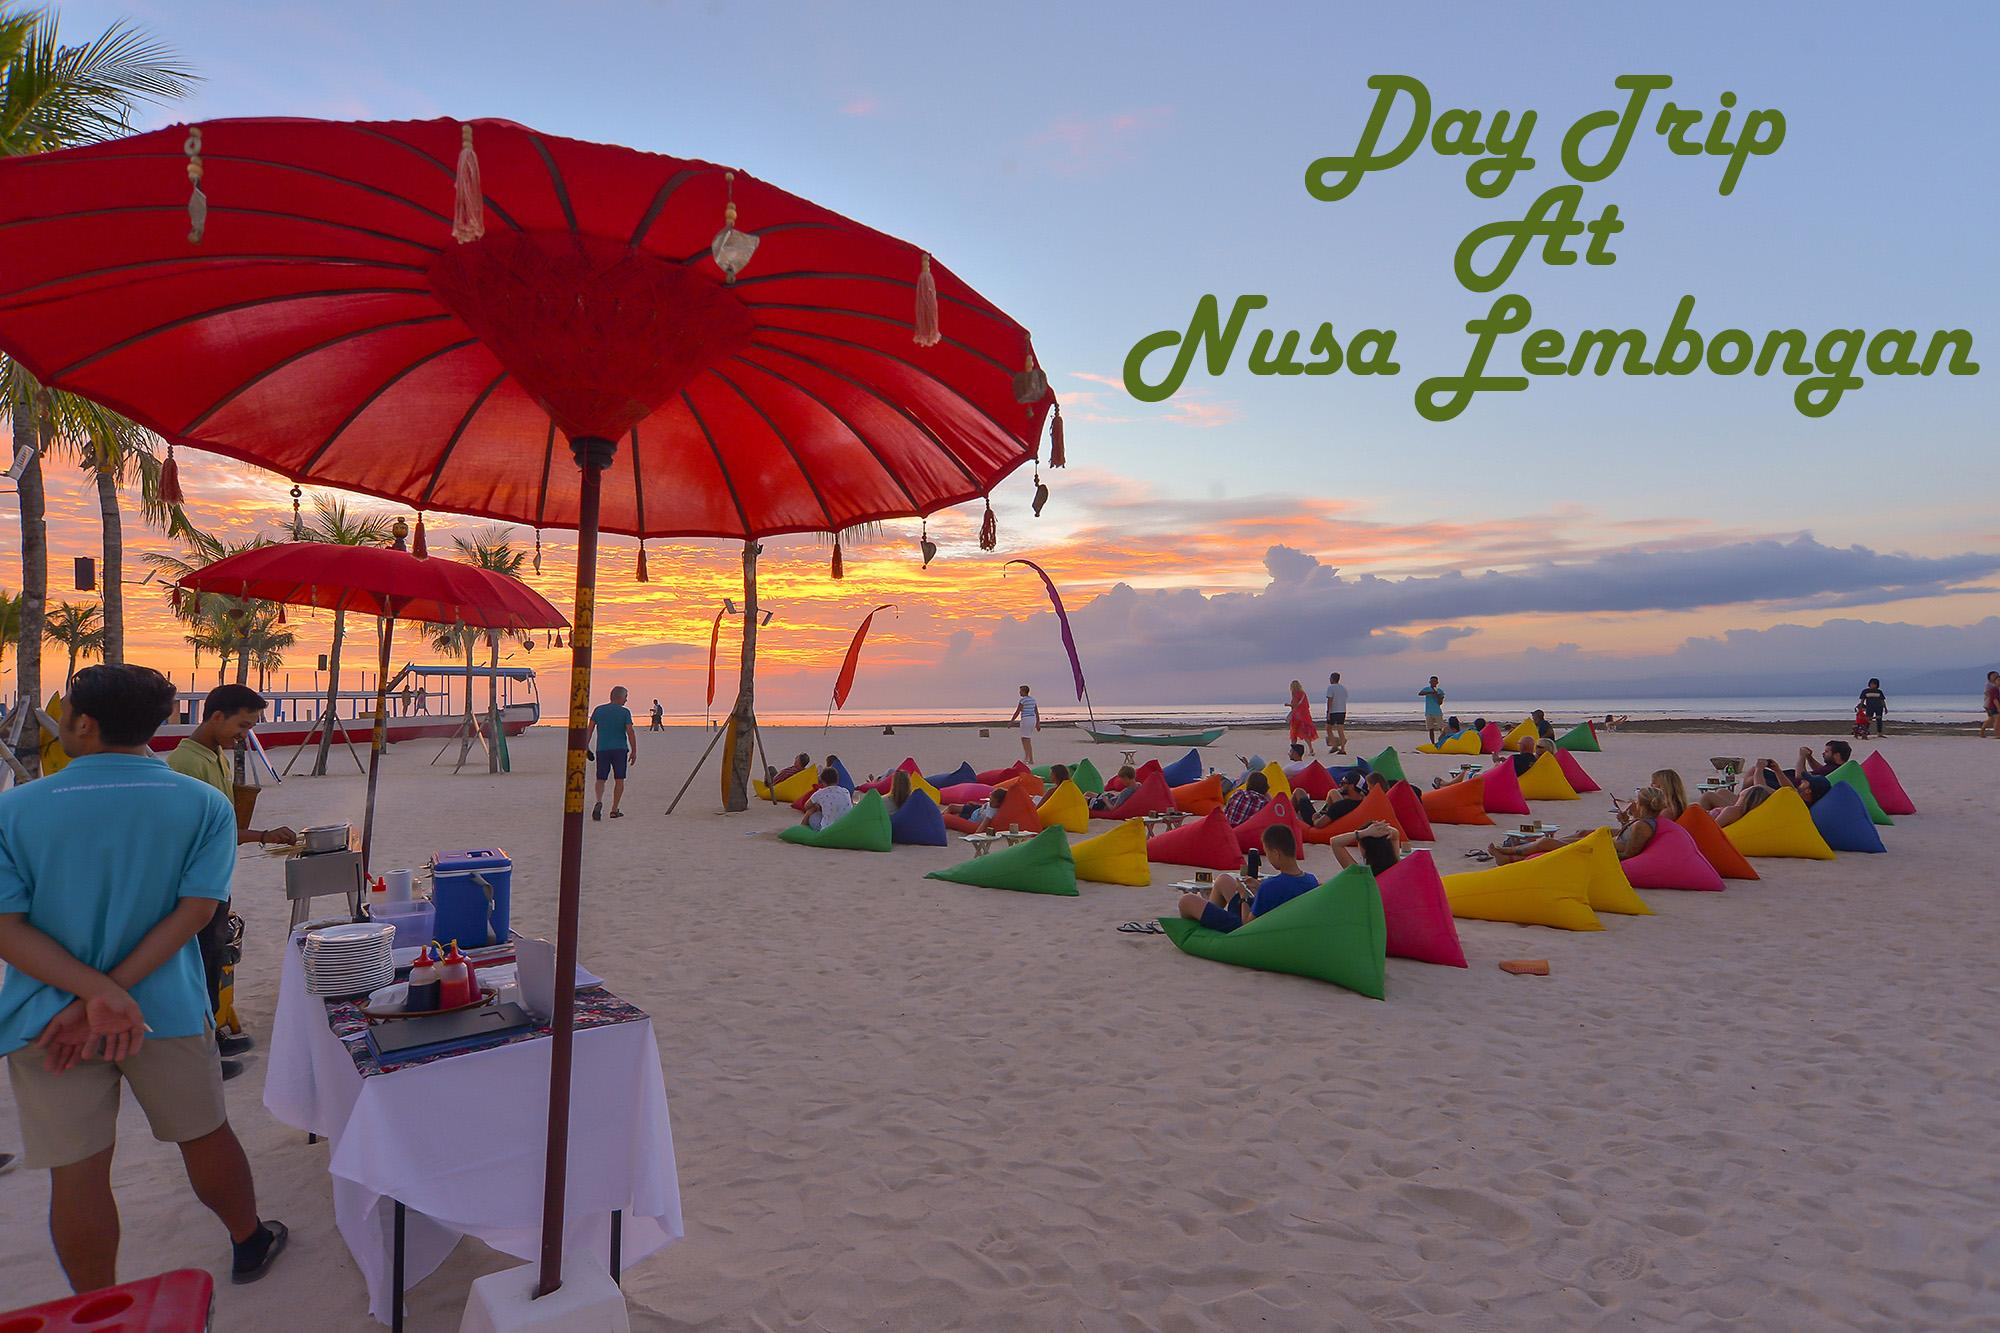 Daytrip Nusalembongan Bali (lazy Package) By Discovery Online.